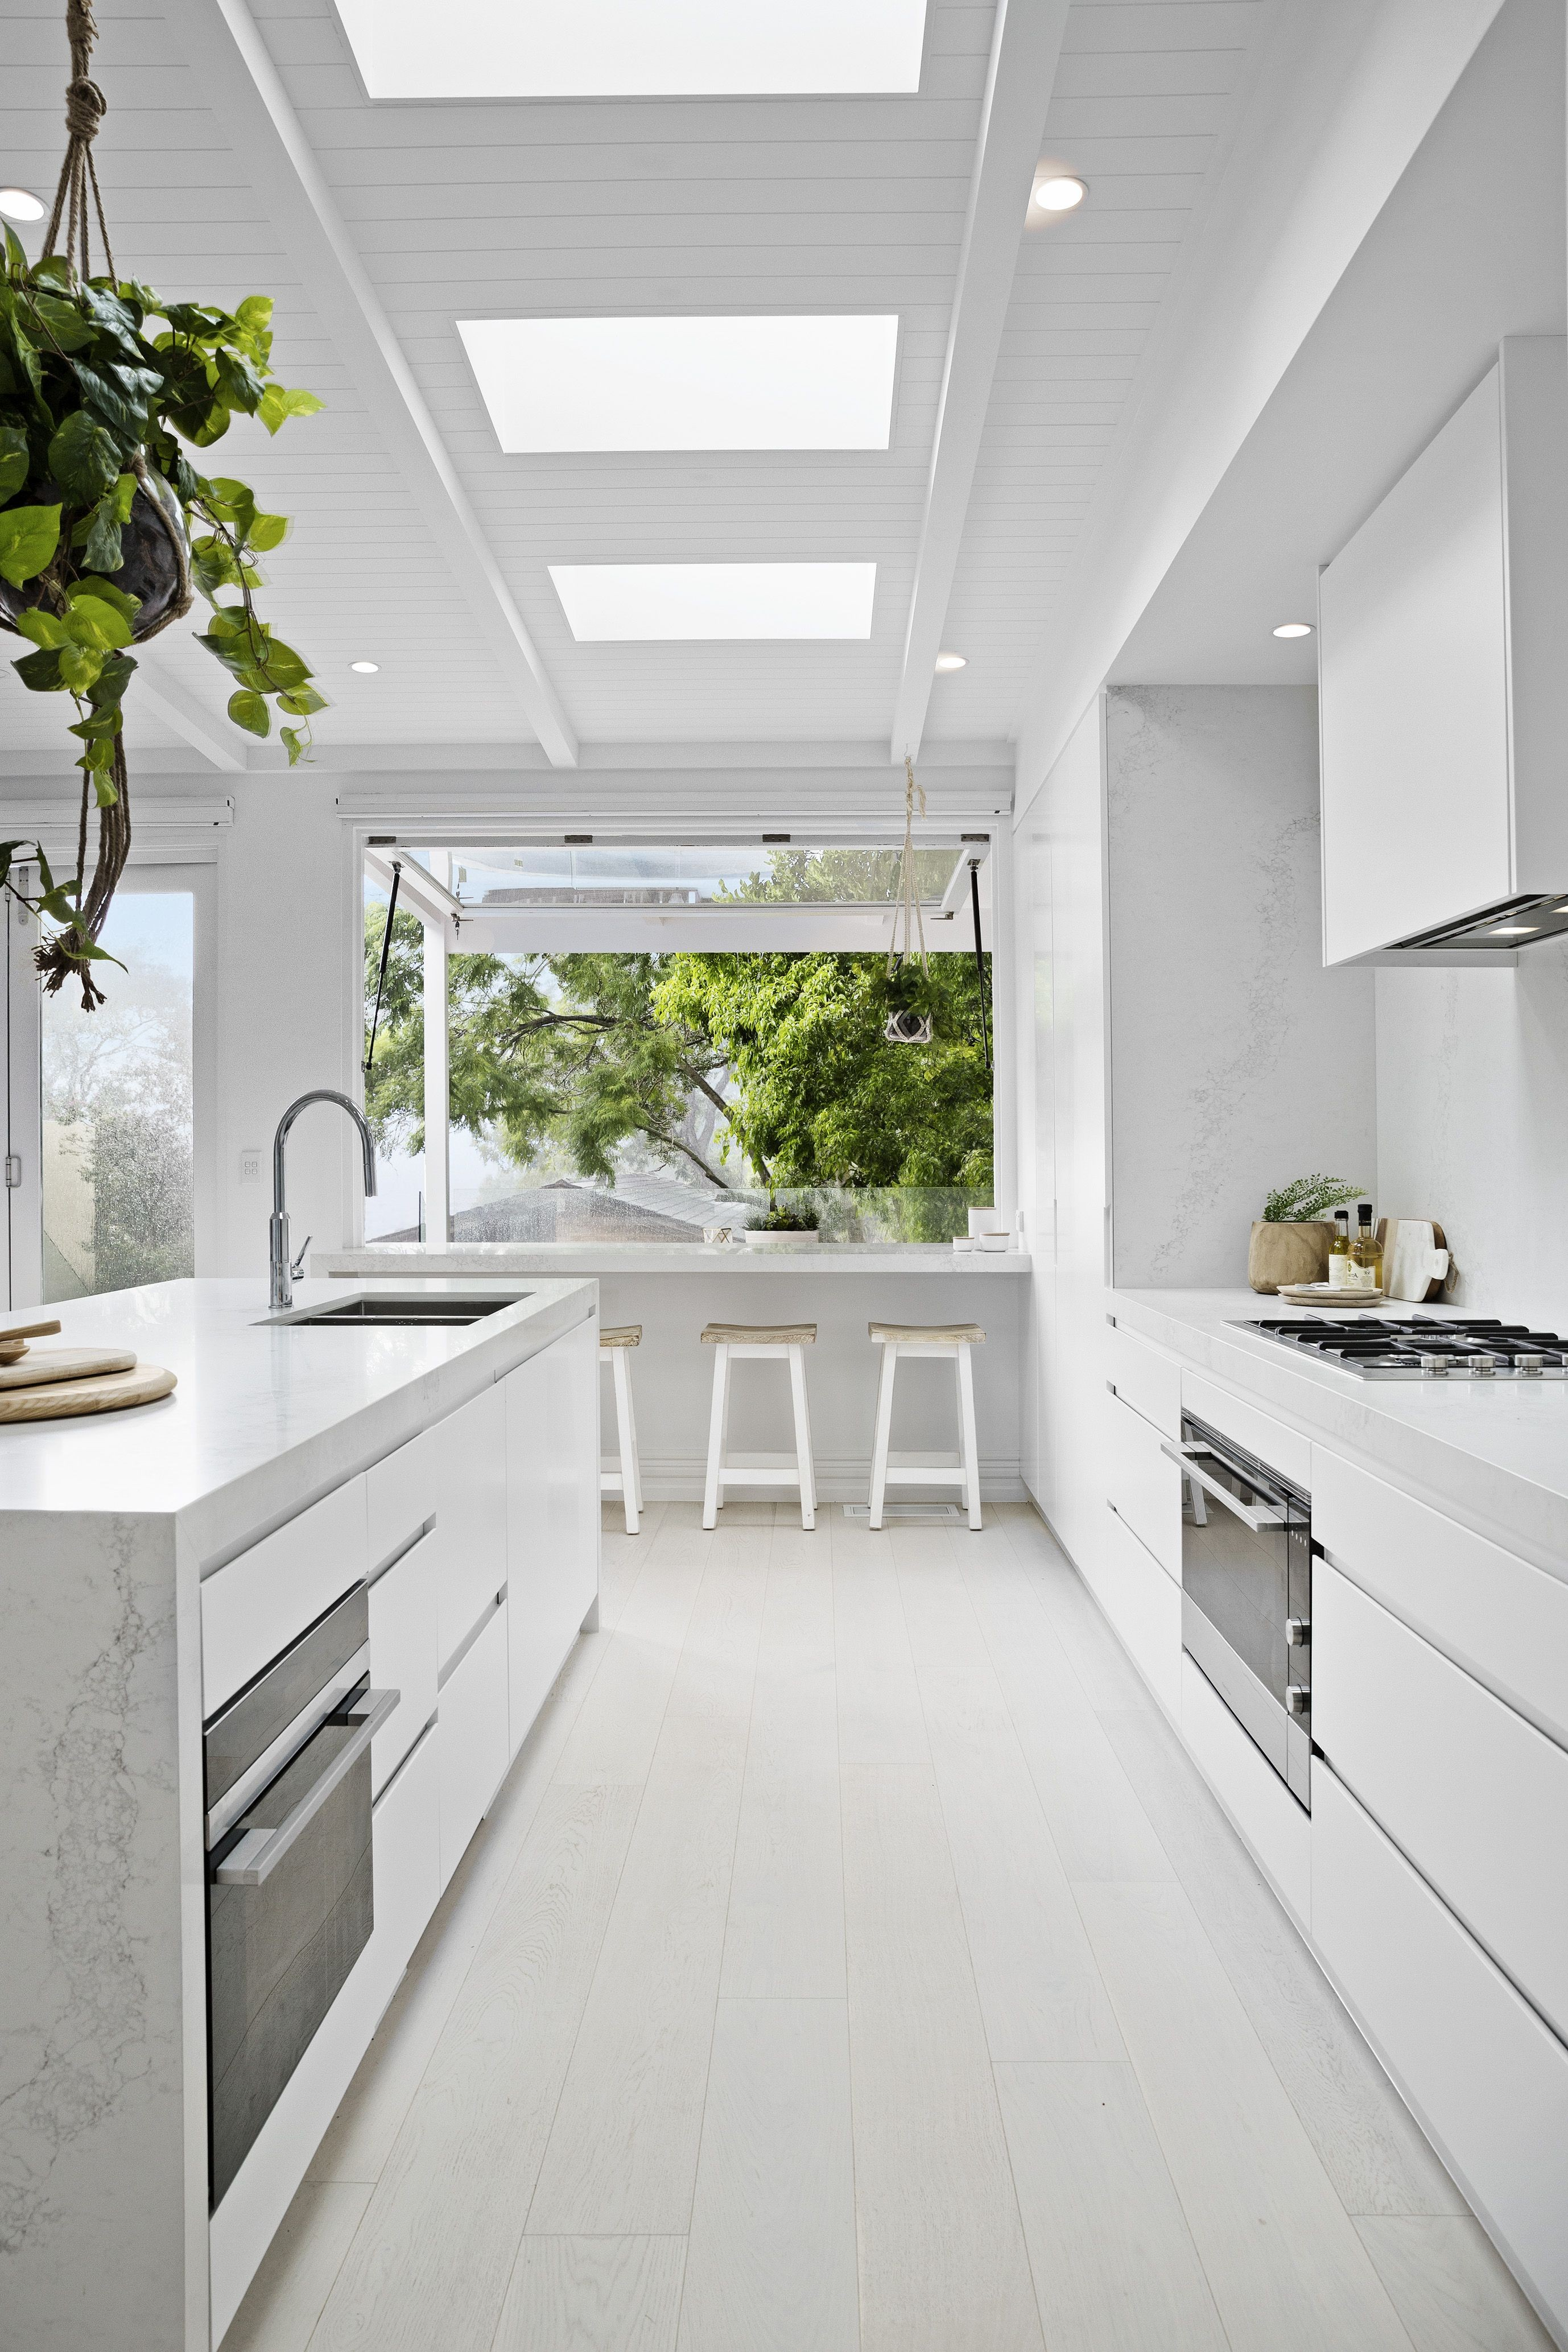 Browse through our incredible collection of luxury kitchen designs ideas and pictures Interior Design Kitchen